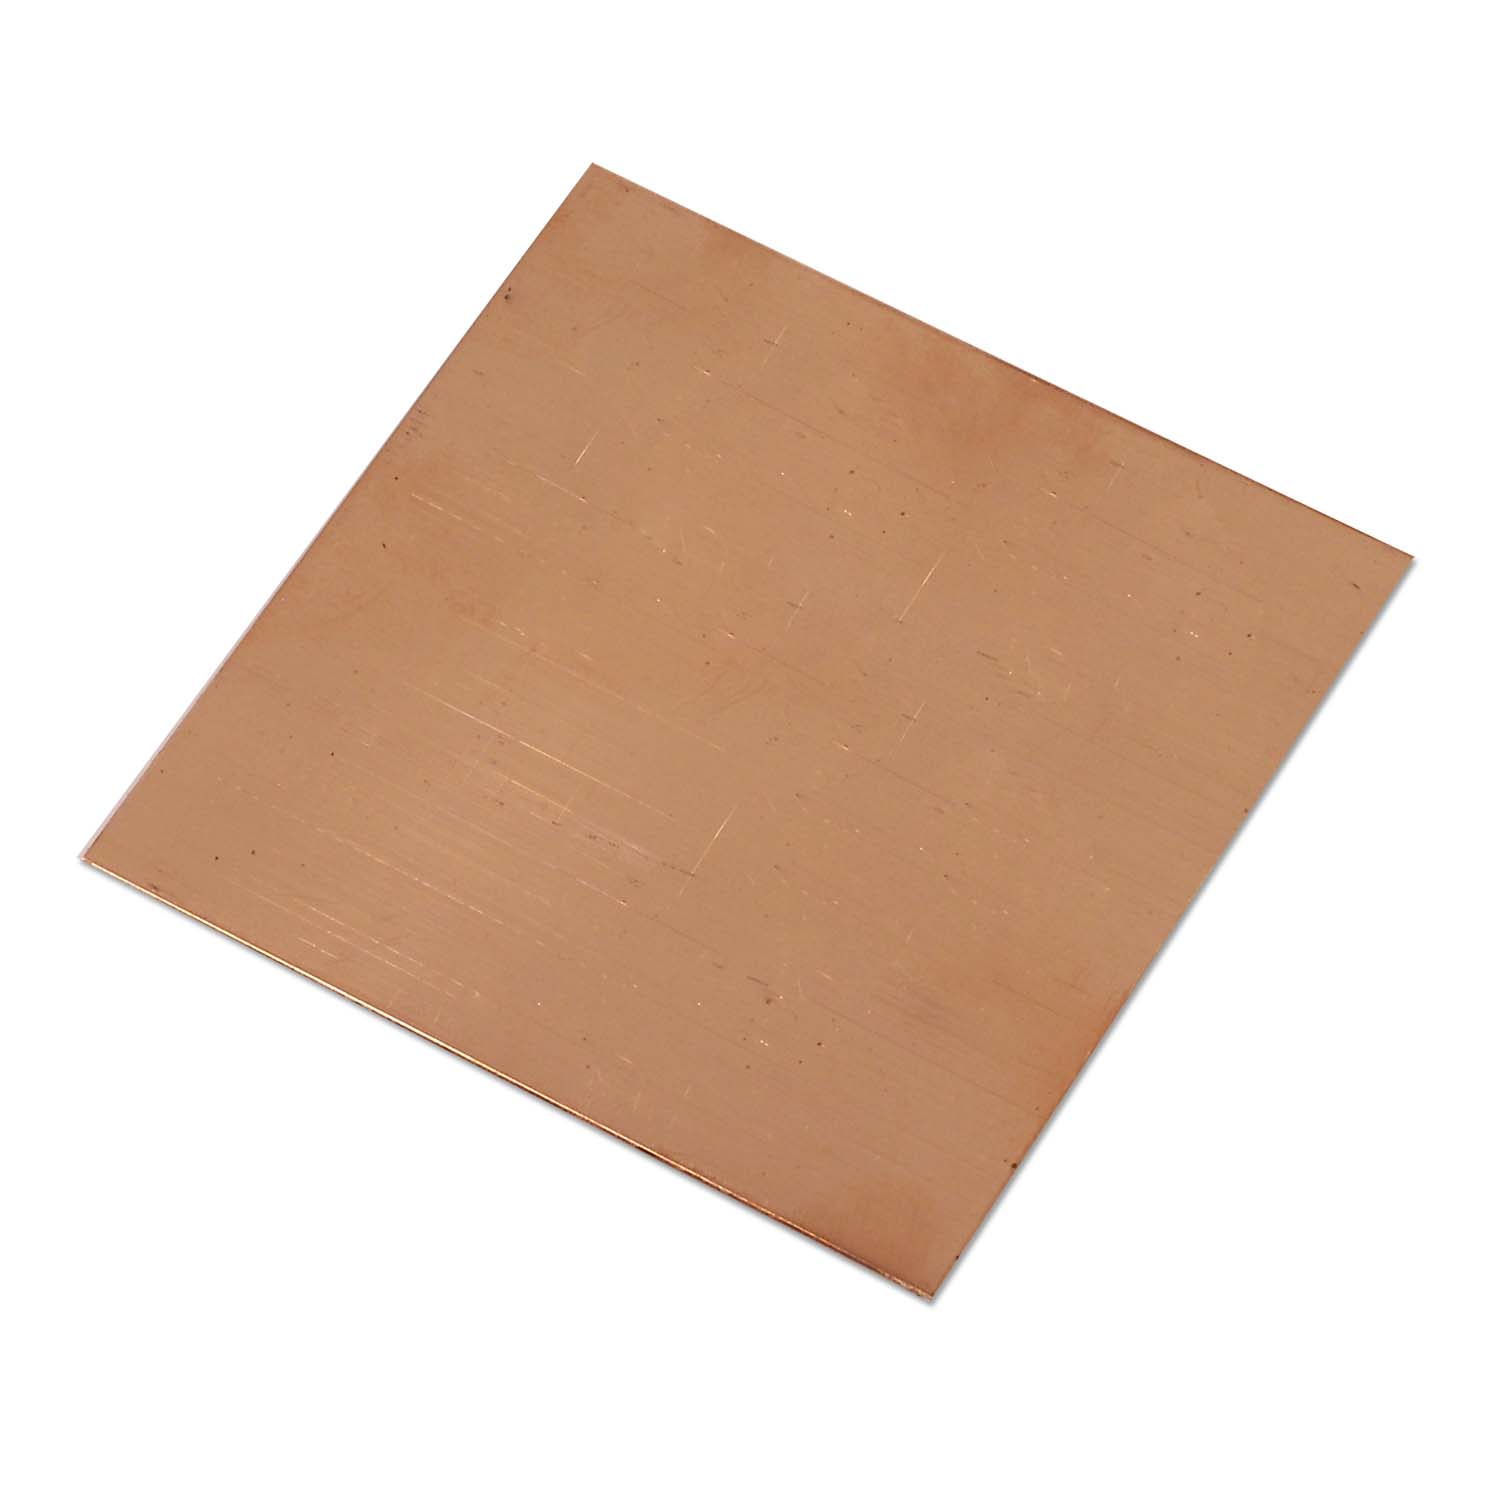 Copper Sheet 22 Gauge Size 3x3 Inch Jewelry Making Sheet